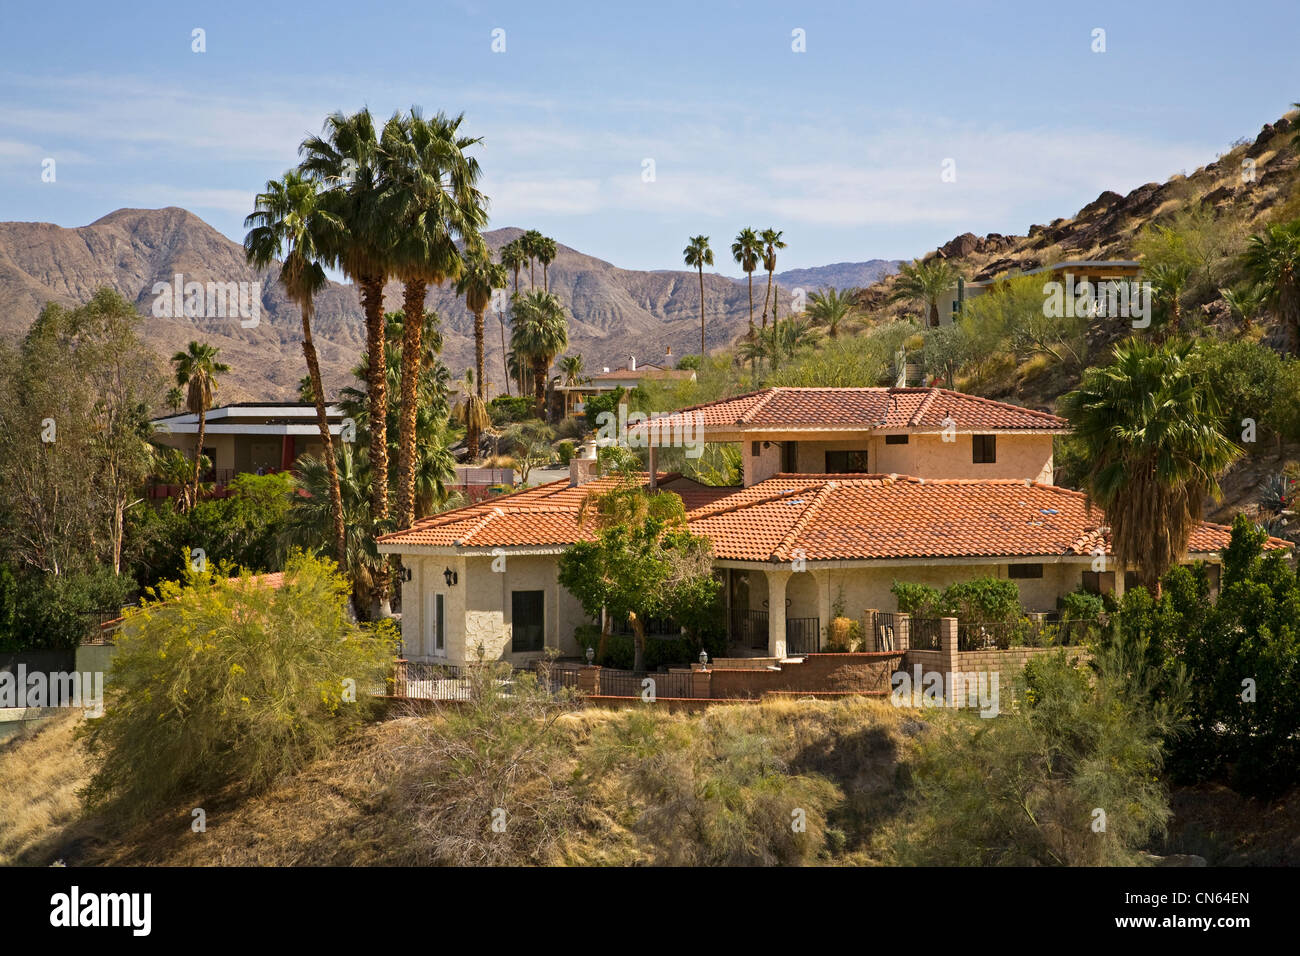 Expensive California Mission Architecture Homes In Palm Springs